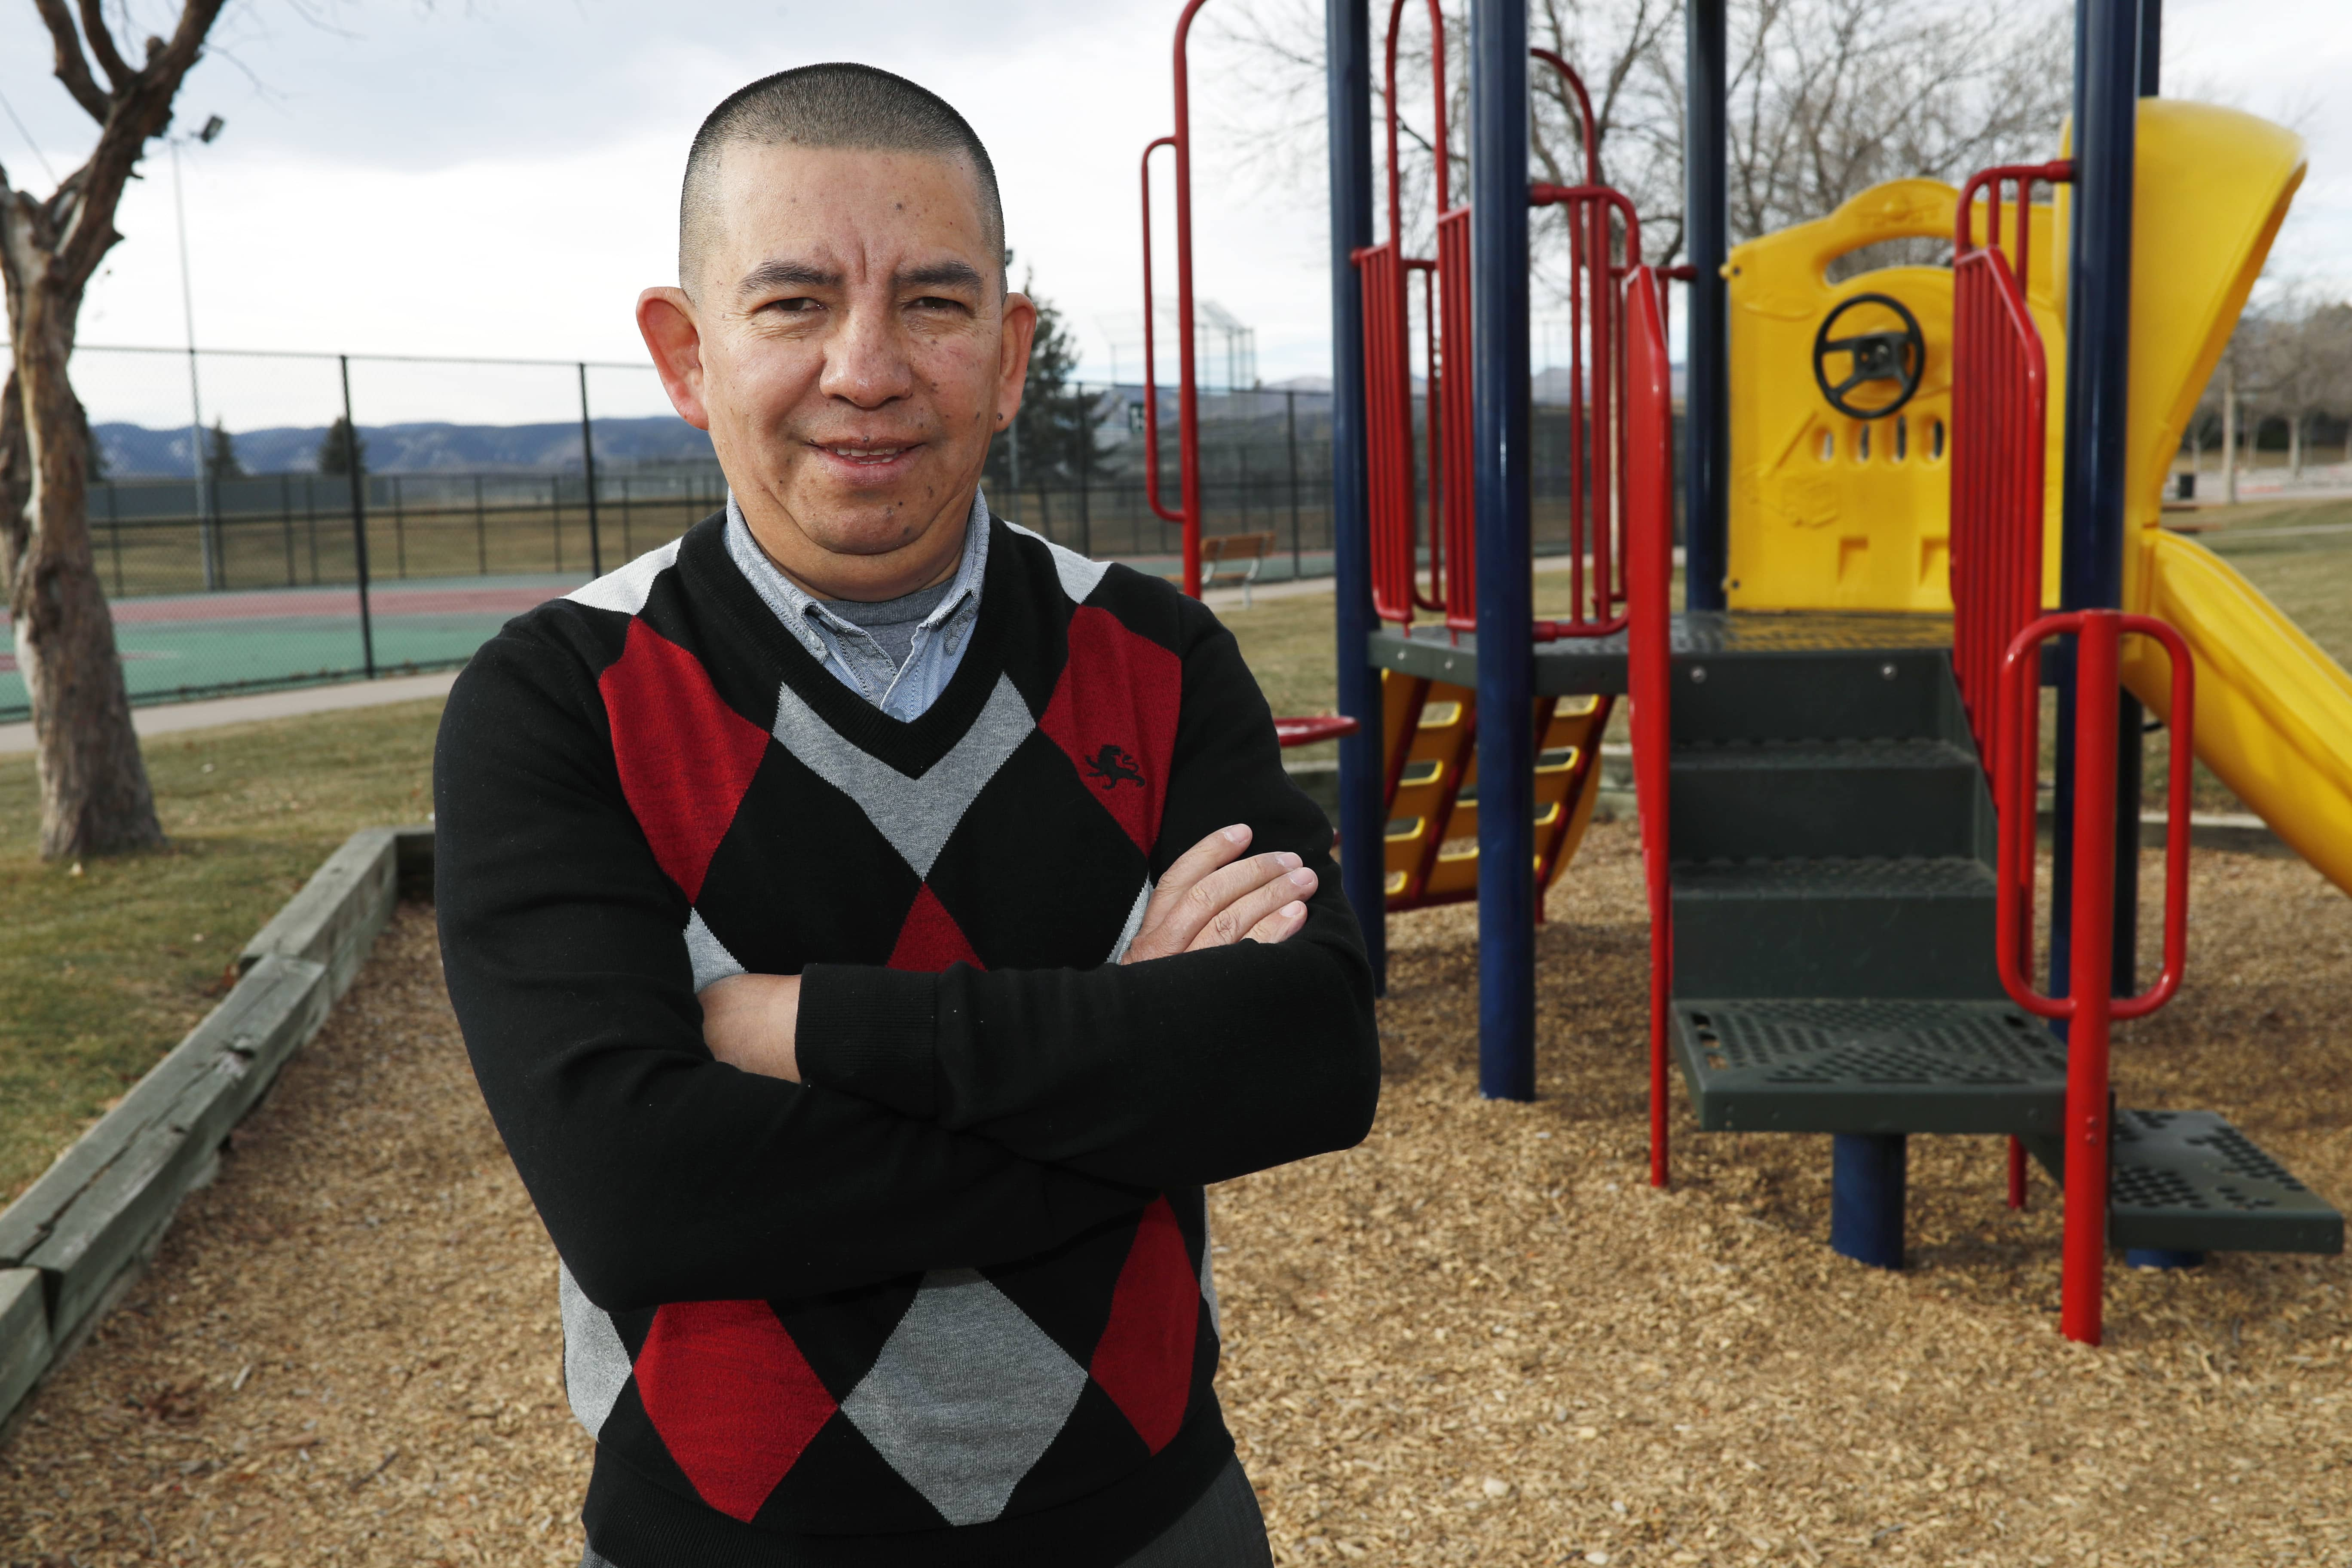 Photo of Pedro H. Gonzalez, the bi-vocational Denver pastor and board member of Colorado Family Action